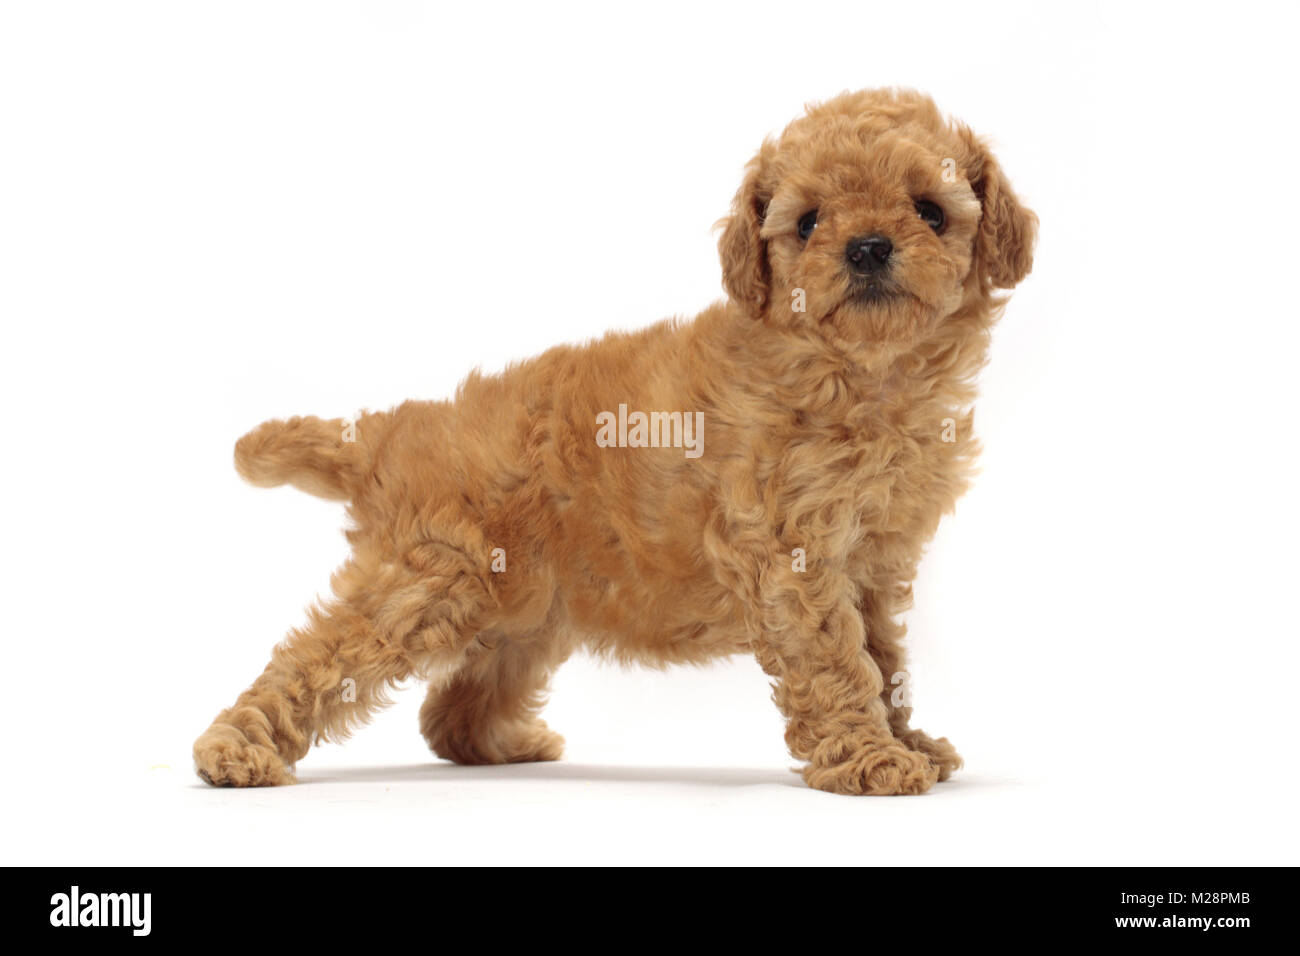 Apricot Toy Poodle Puppy Side View Stock Photo 173526427 Alamy